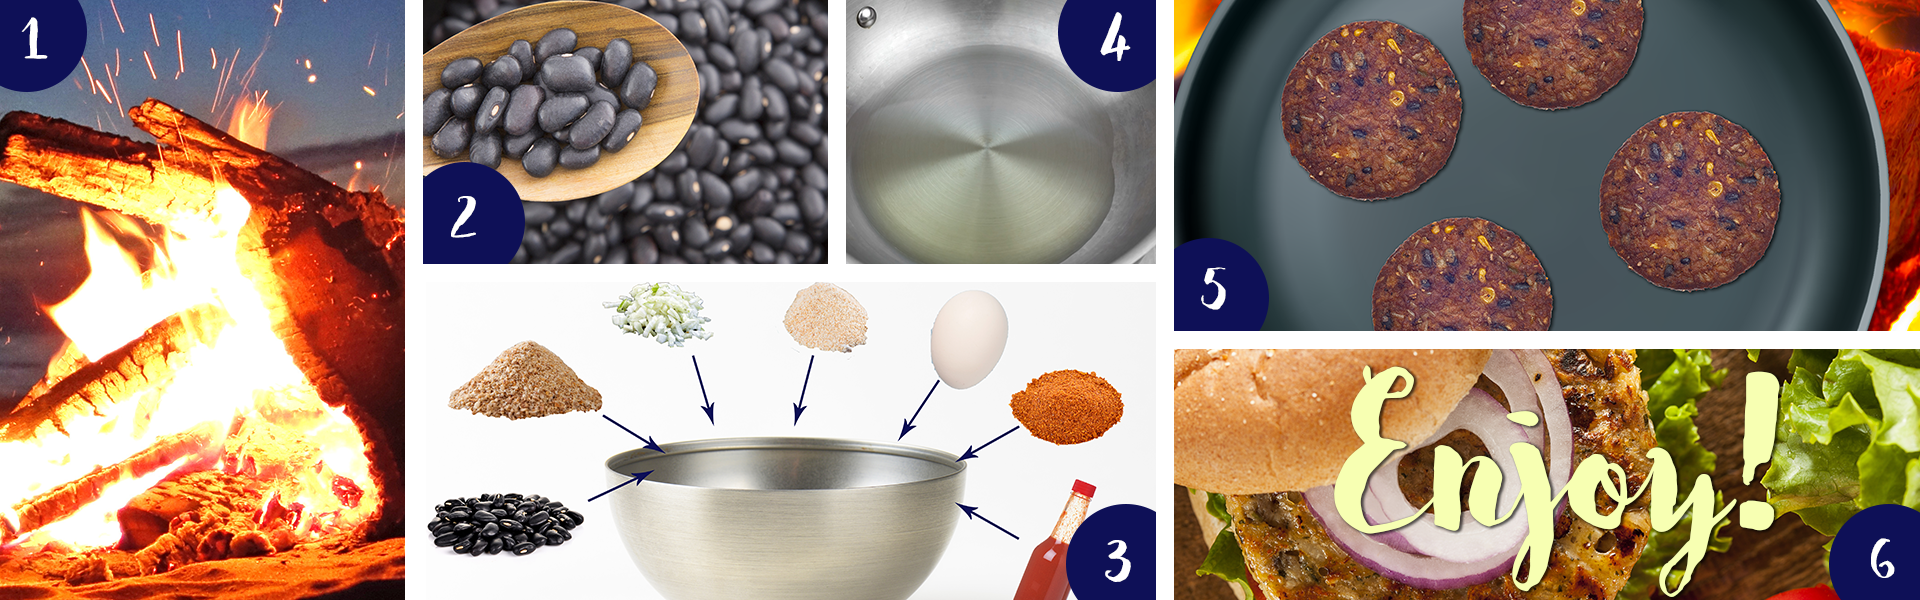 Steps on how to make black bean burgers.